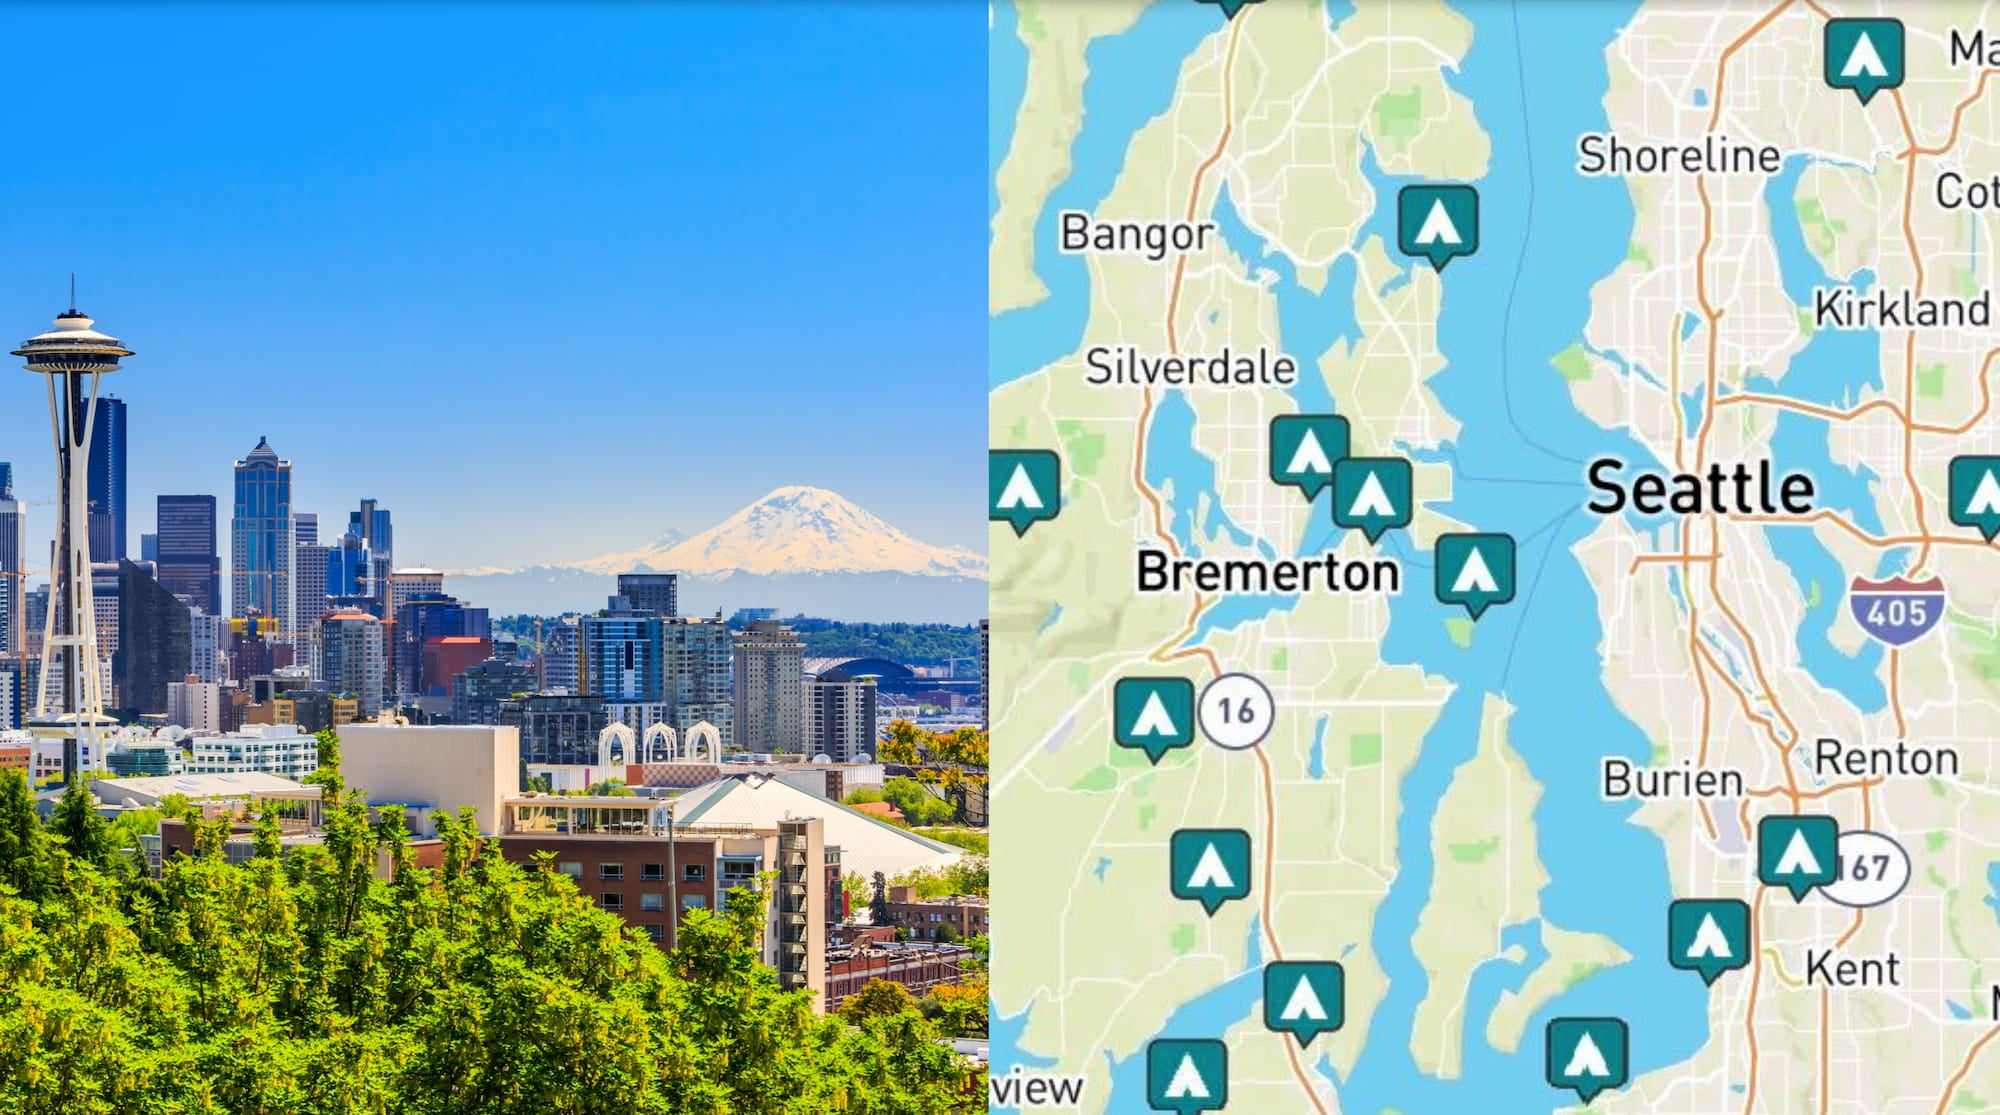 side-by-side images of seattle skyline and map of campgrounds near seattle